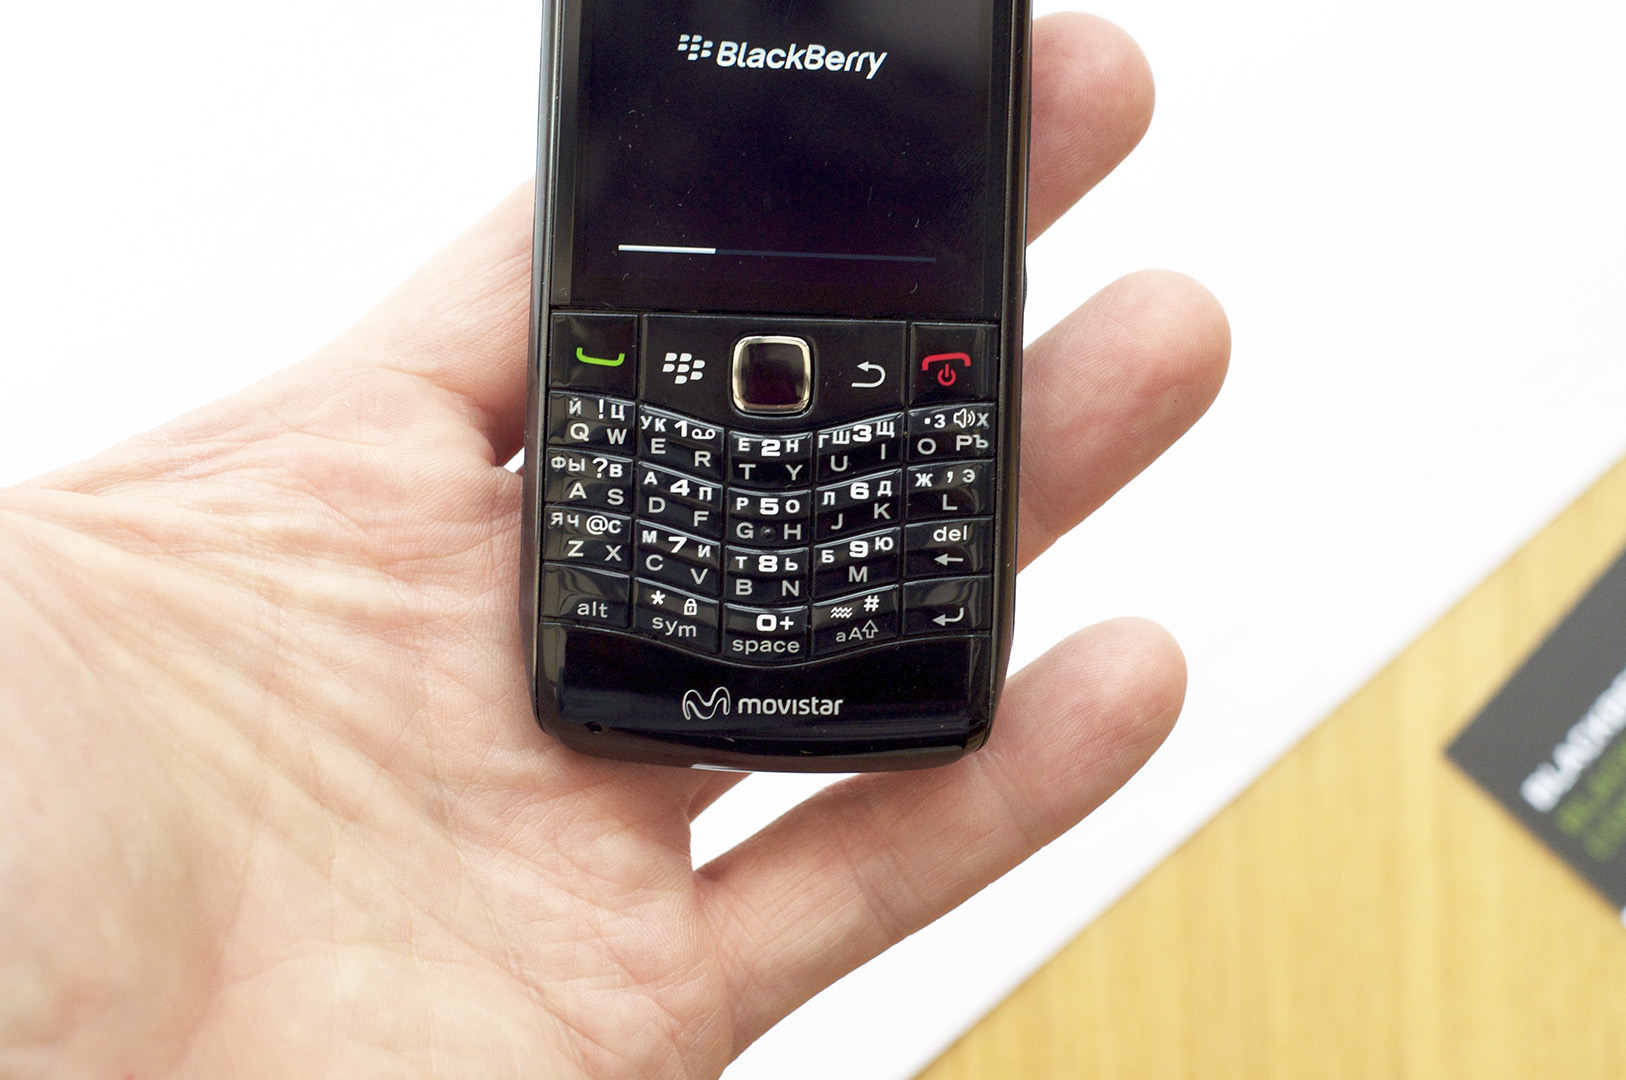 blackberry-9100-pearl-3g-10